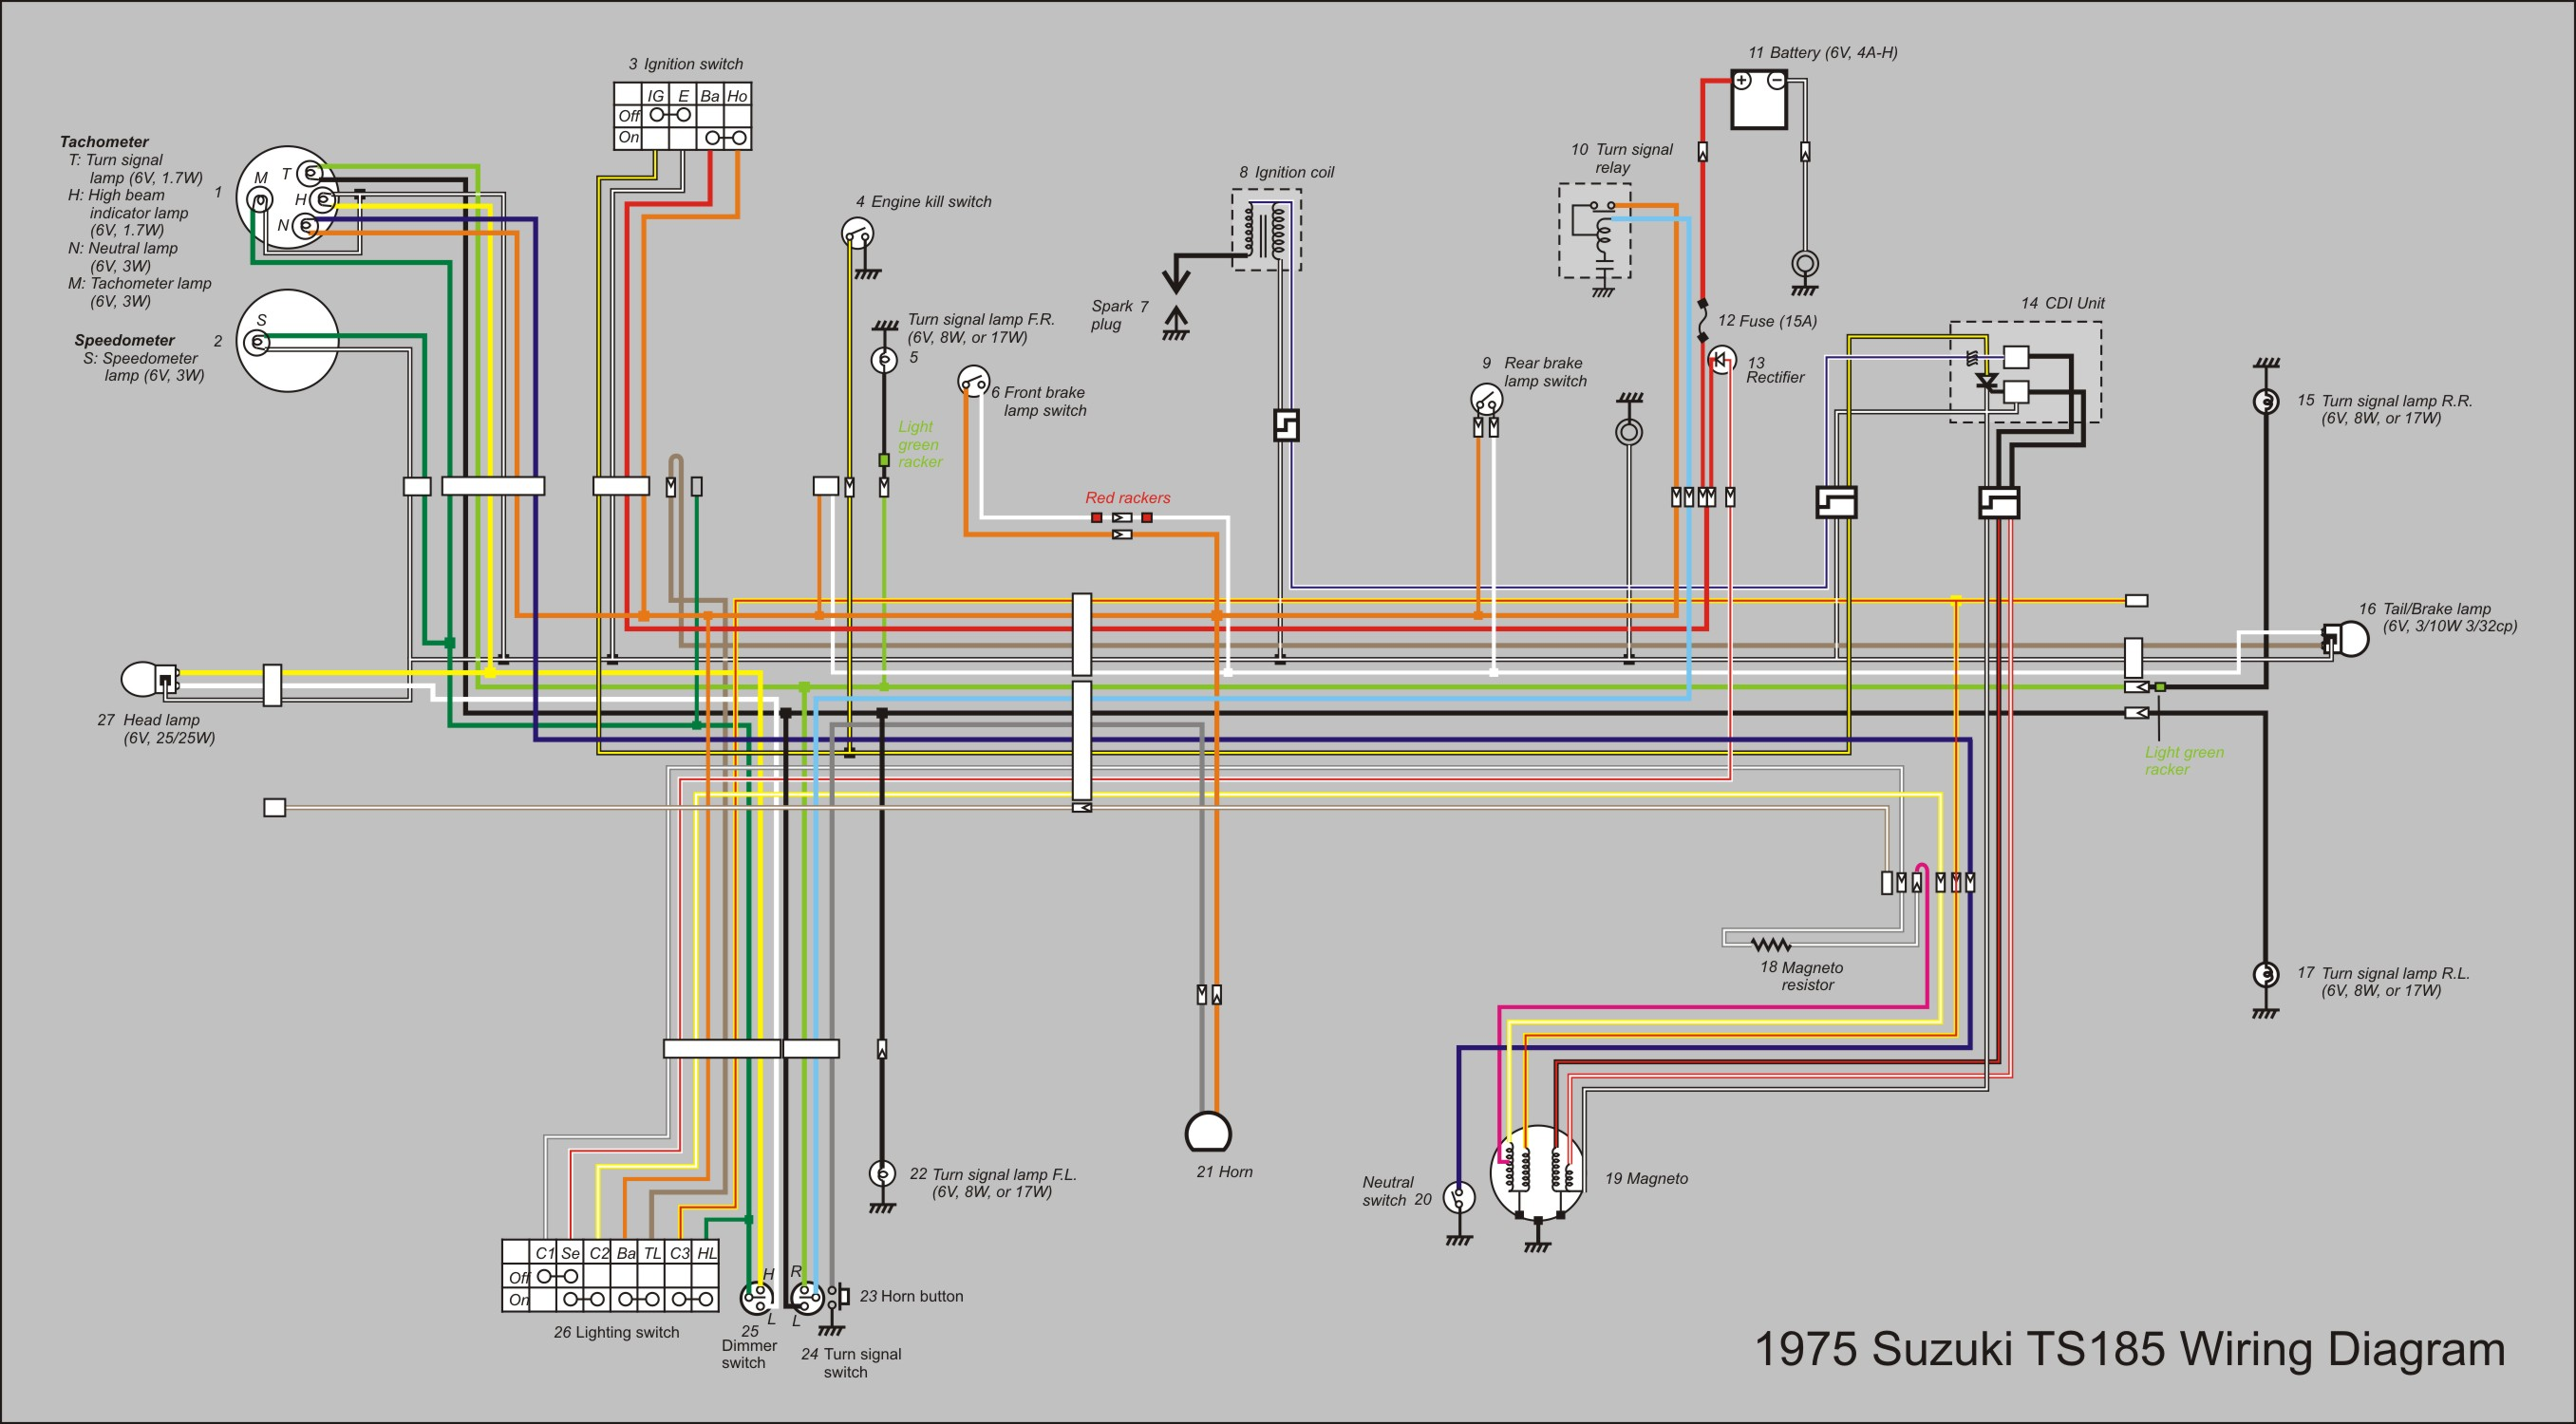 TS185_Wiring_Diagram_new file ts185 wiring diagram new jpg wikimedia commons find wiring diagram for 87 ford f 150 at bayanpartner.co